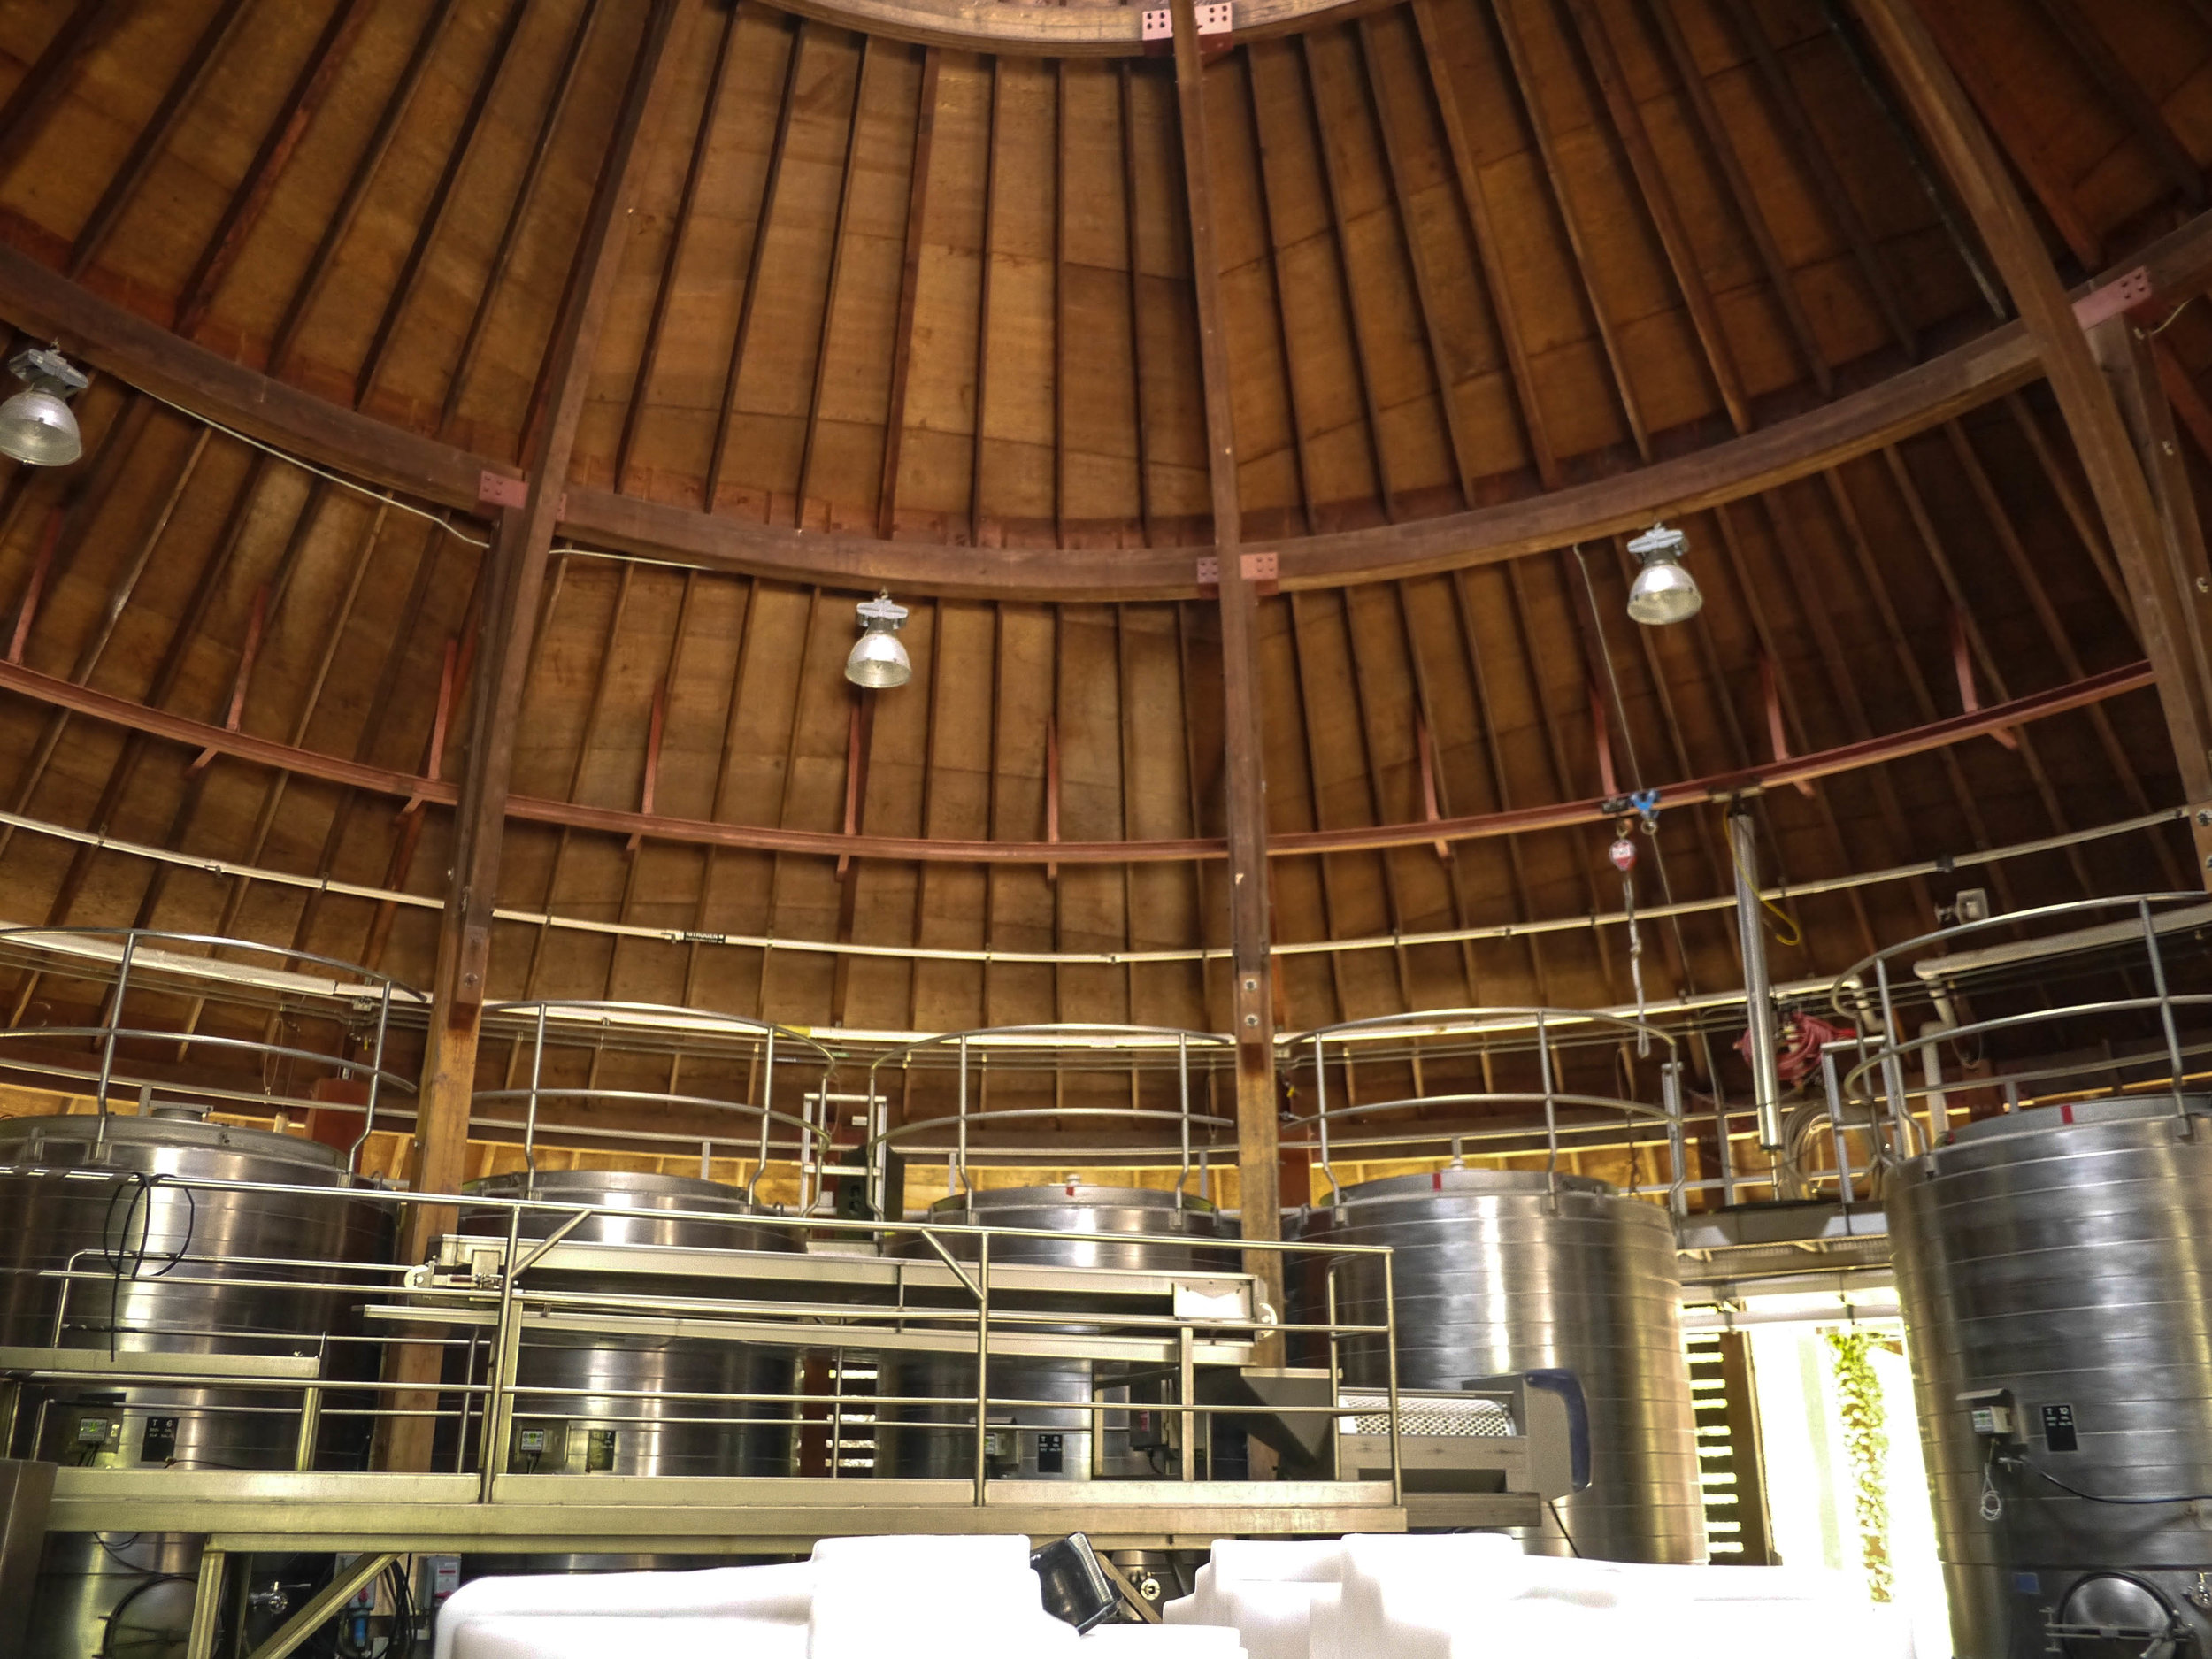 And their amazing space where they produce the wines.